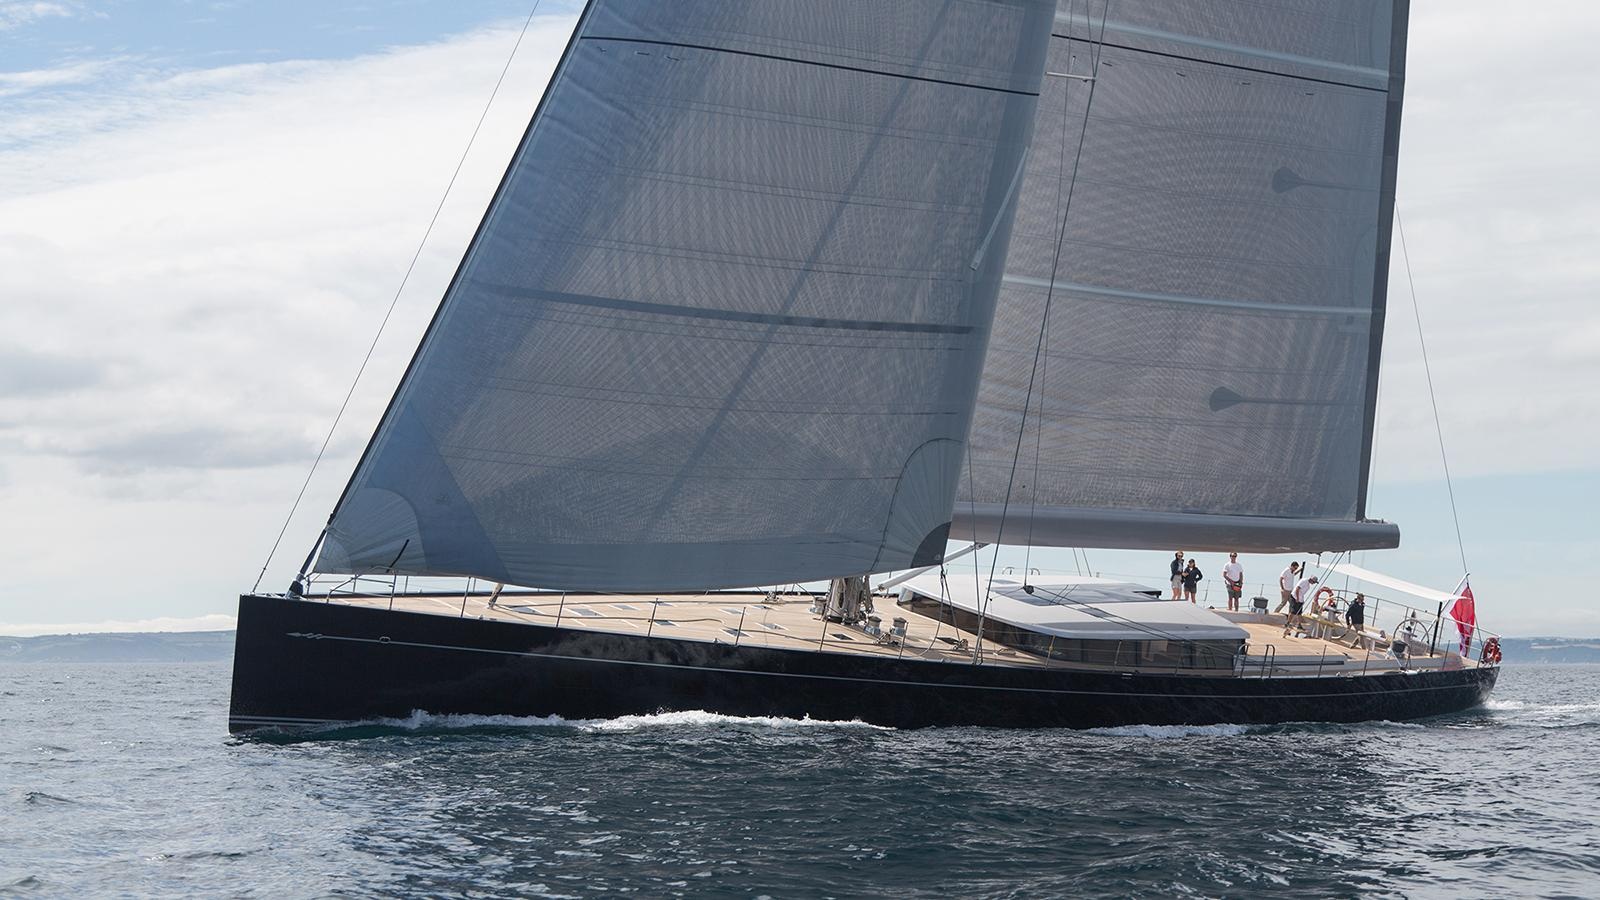 3  sailing yacht g2 - boat shopping - Boat Shopping